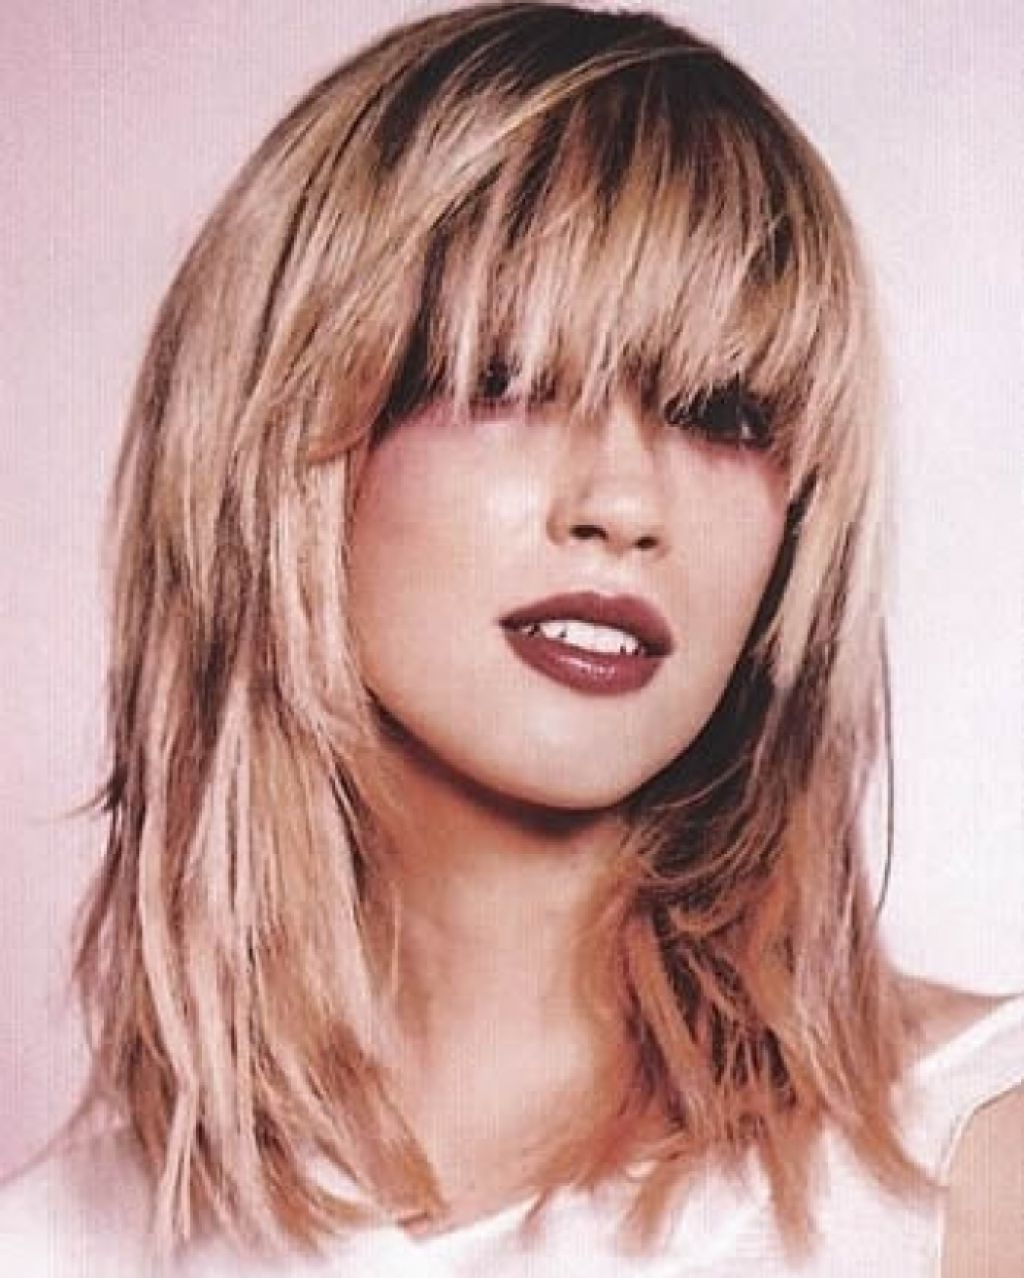 Latest Shaggy Layered Hairstyles For Long Hair Pertaining To Shags With Bangs Layered Shaggy Long Hairstyles Black Hair Collection (View 7 of 15)